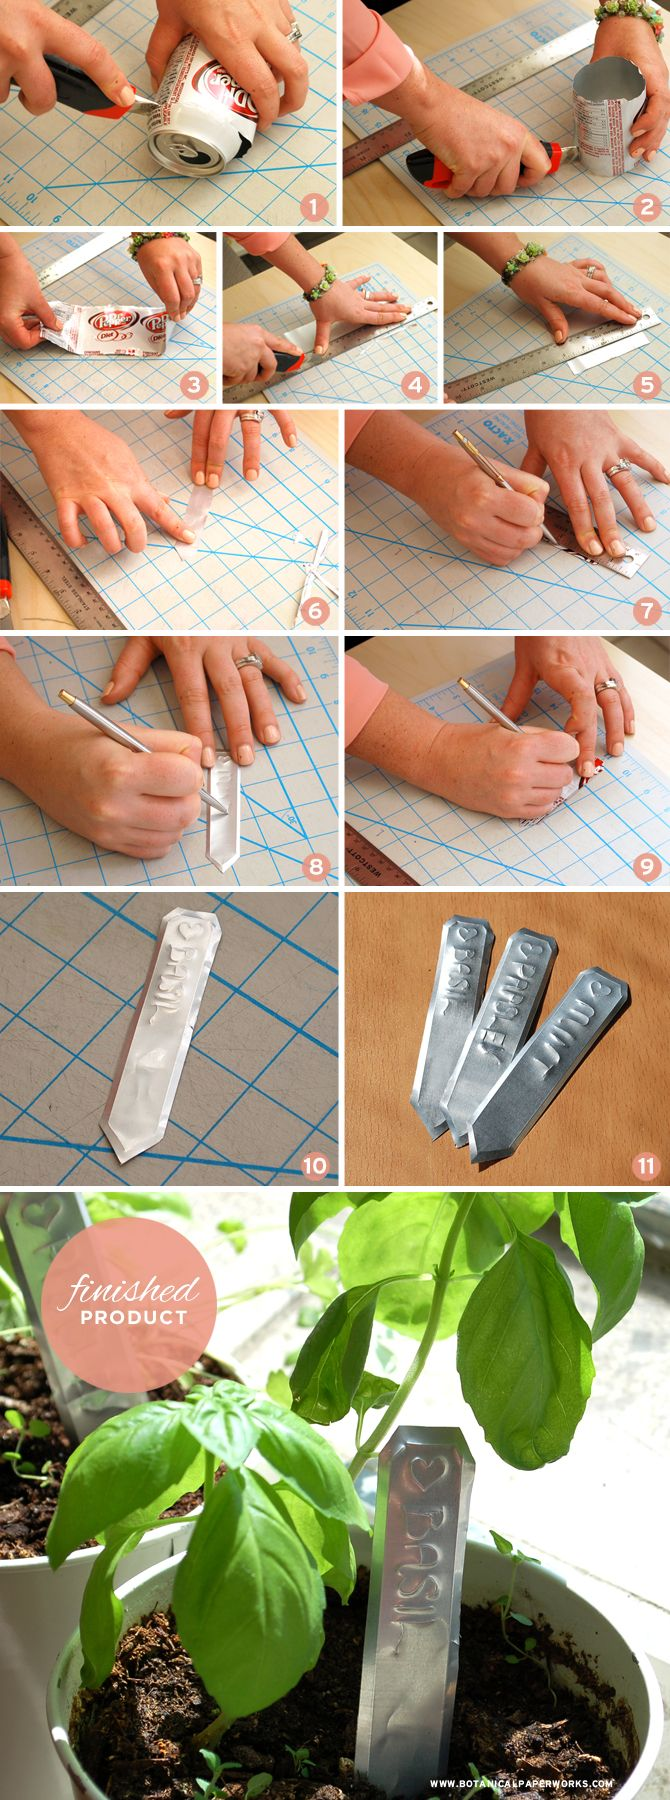 Here's a fun Eco-friendly craft - up-cycle a regular pop can into charming rustic garden markers - Check out the tutorial!